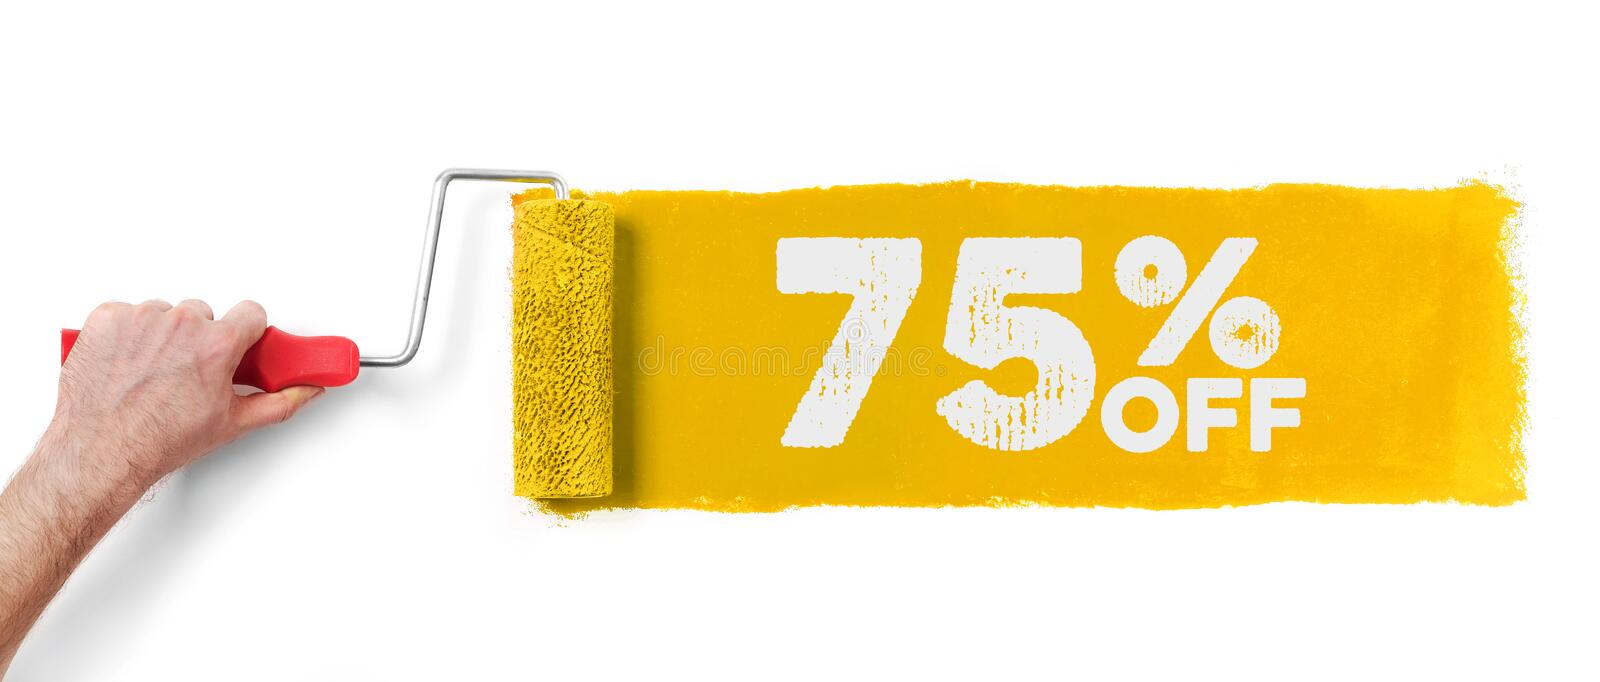 Hand with paint roller showing 75% off stock images